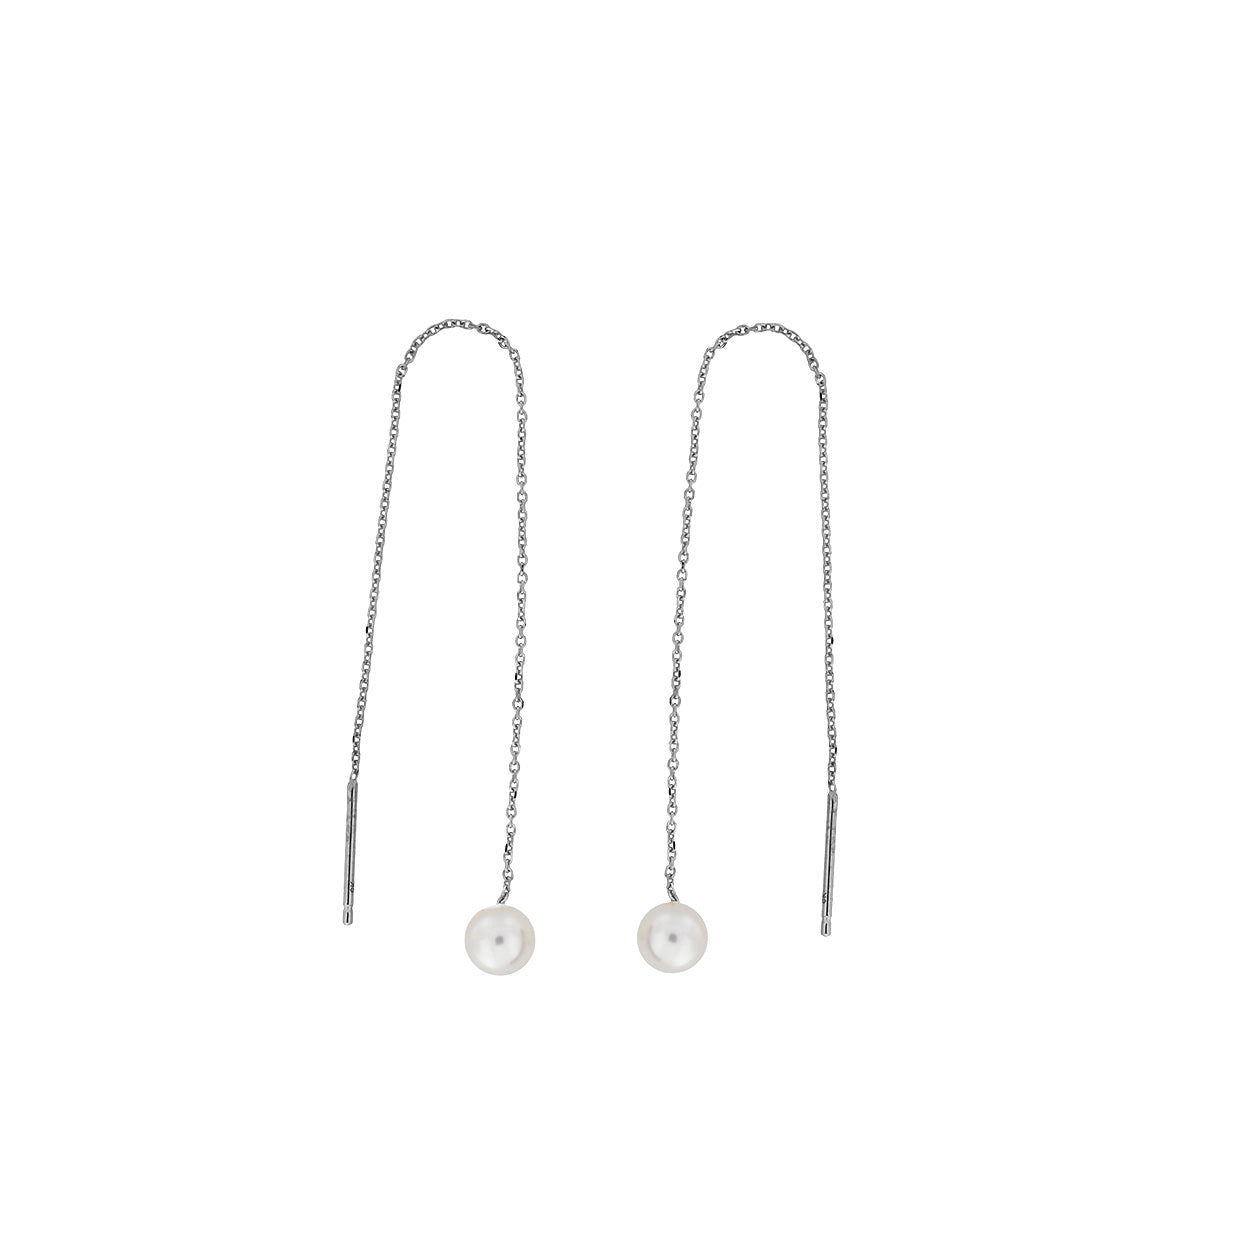 White Gold Round Pearl Pull-through Earrings